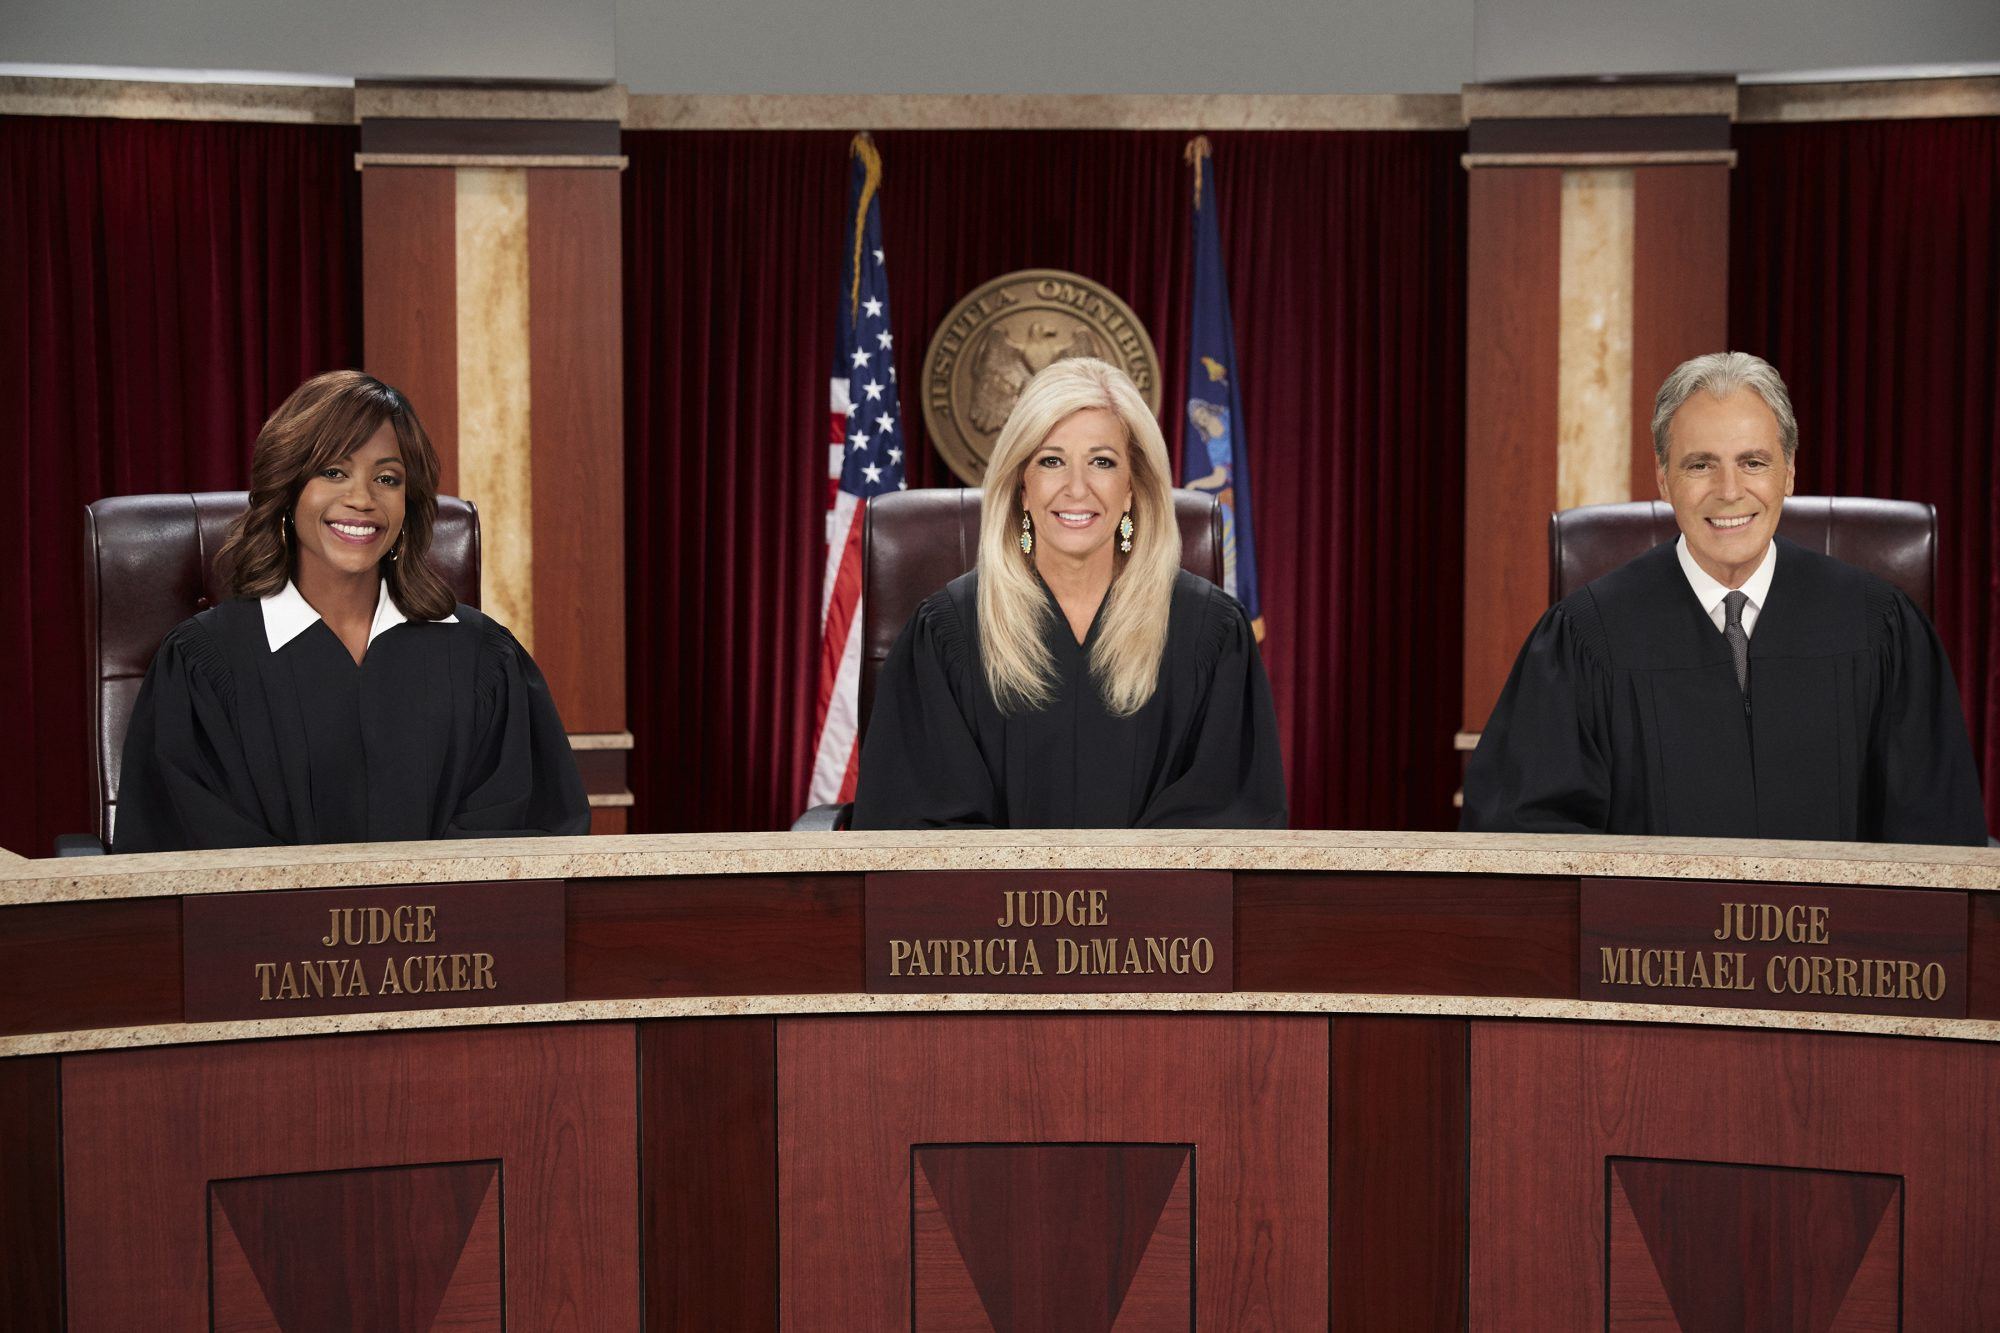 HOT BENCH JUDGES ON BENCH